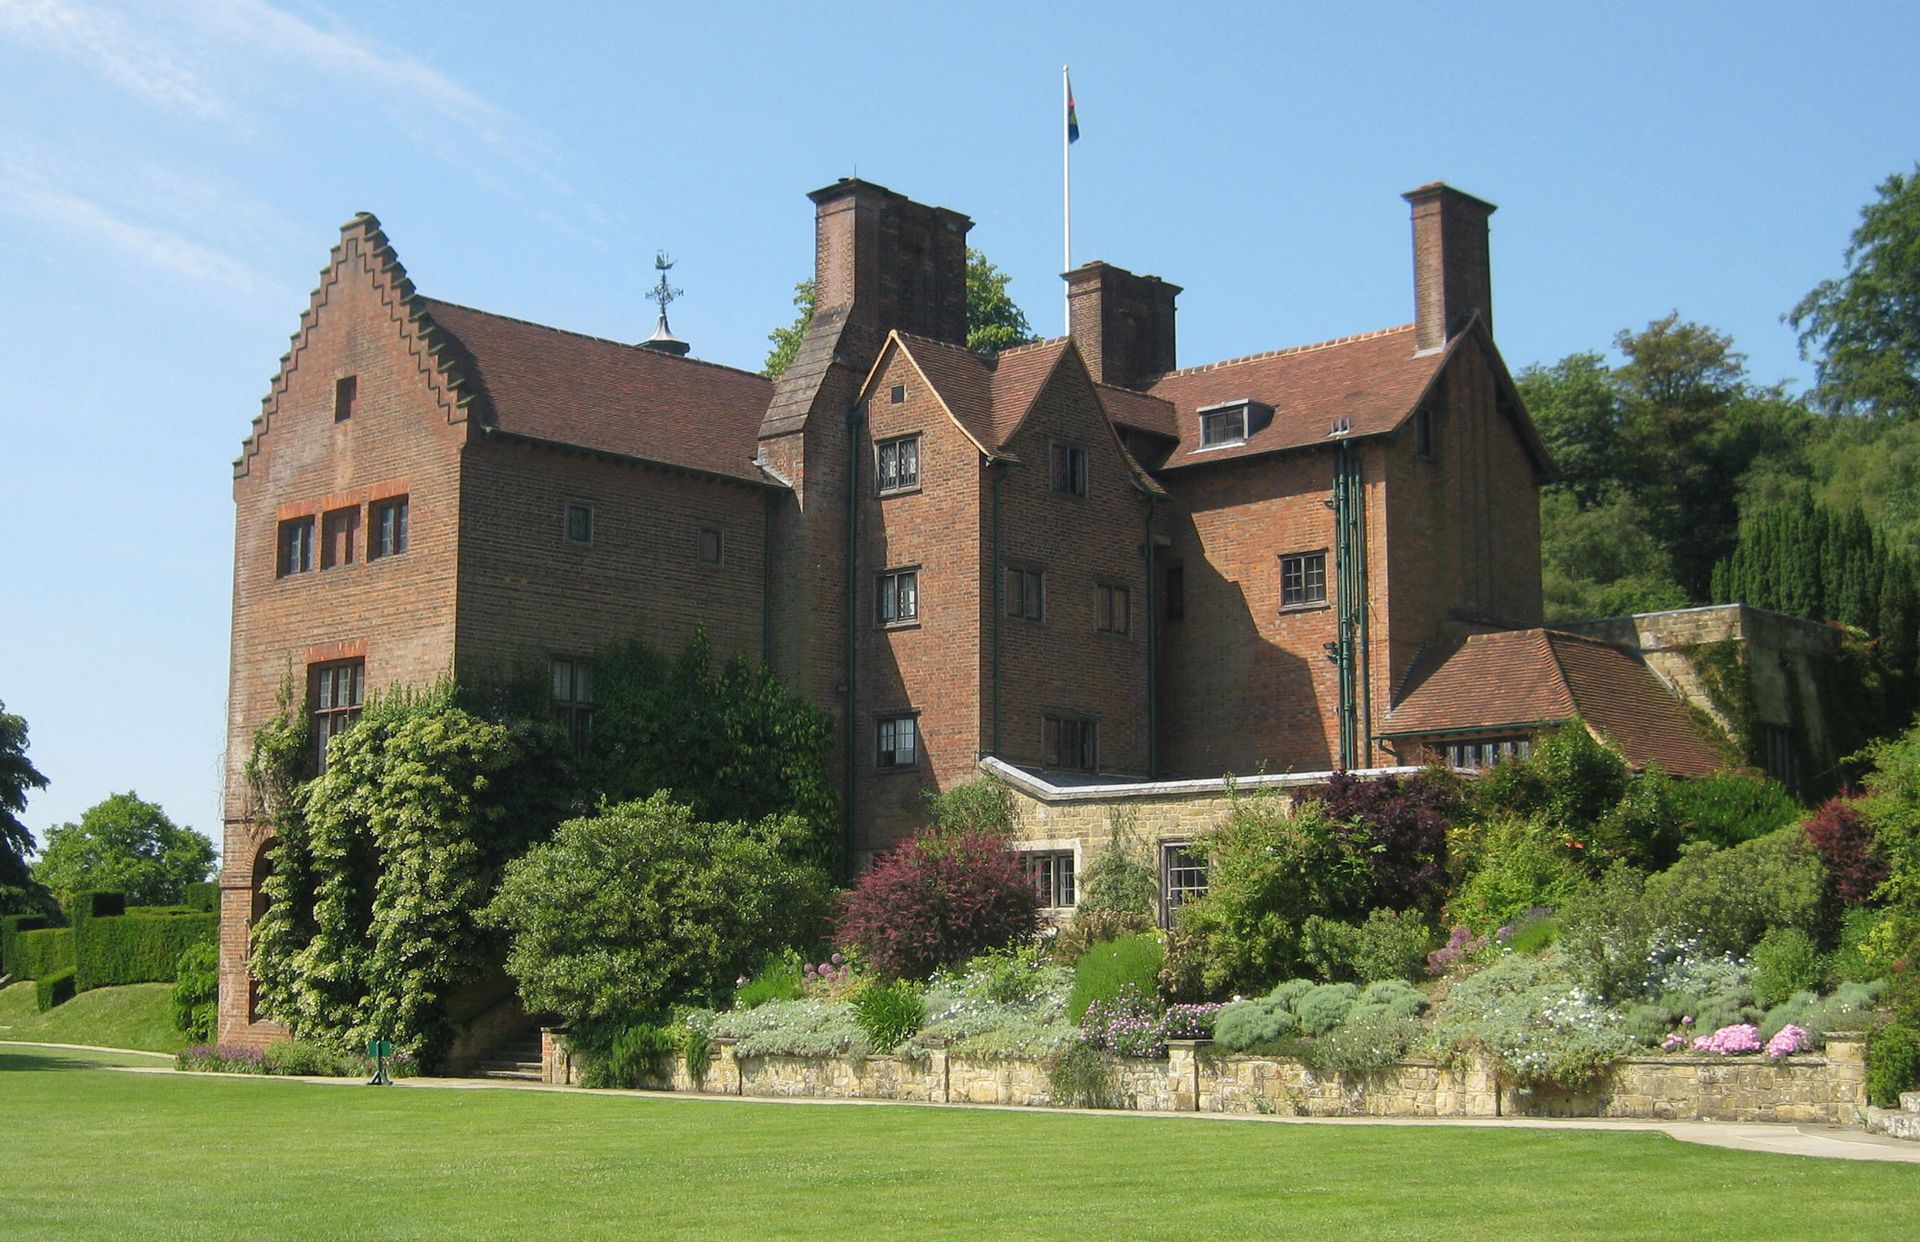 Chartwell, the former home of Winston Churchill, was included in the National Trust's report examining how properties in its care are connected to colonialism and historic slavery